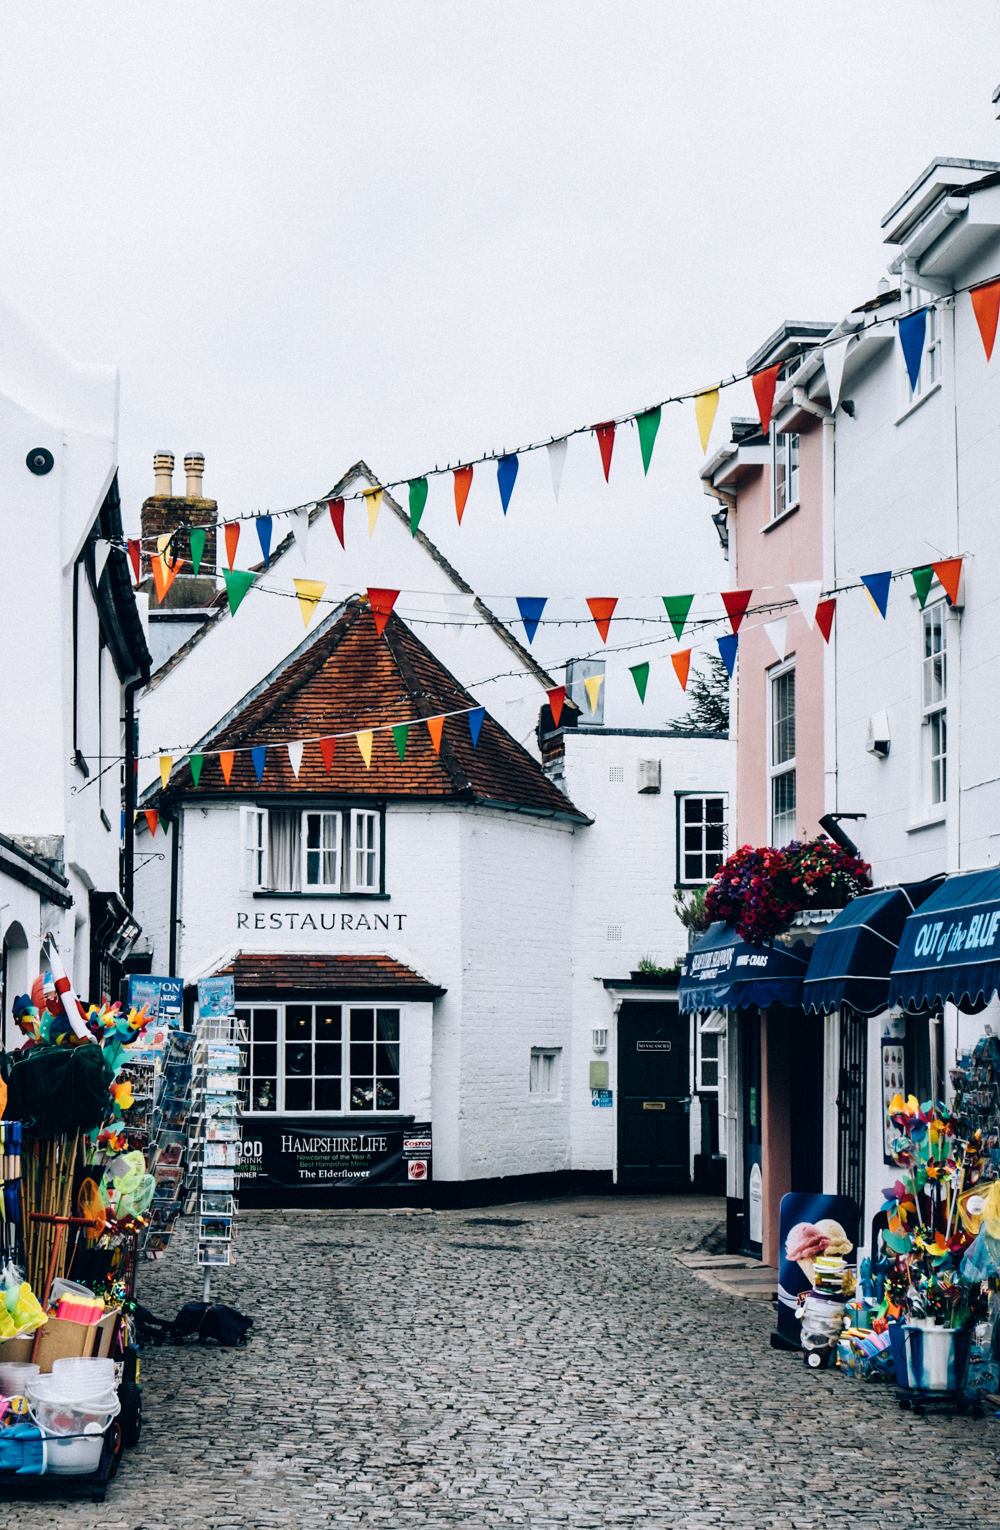 Street Photos: Photos of Lymington